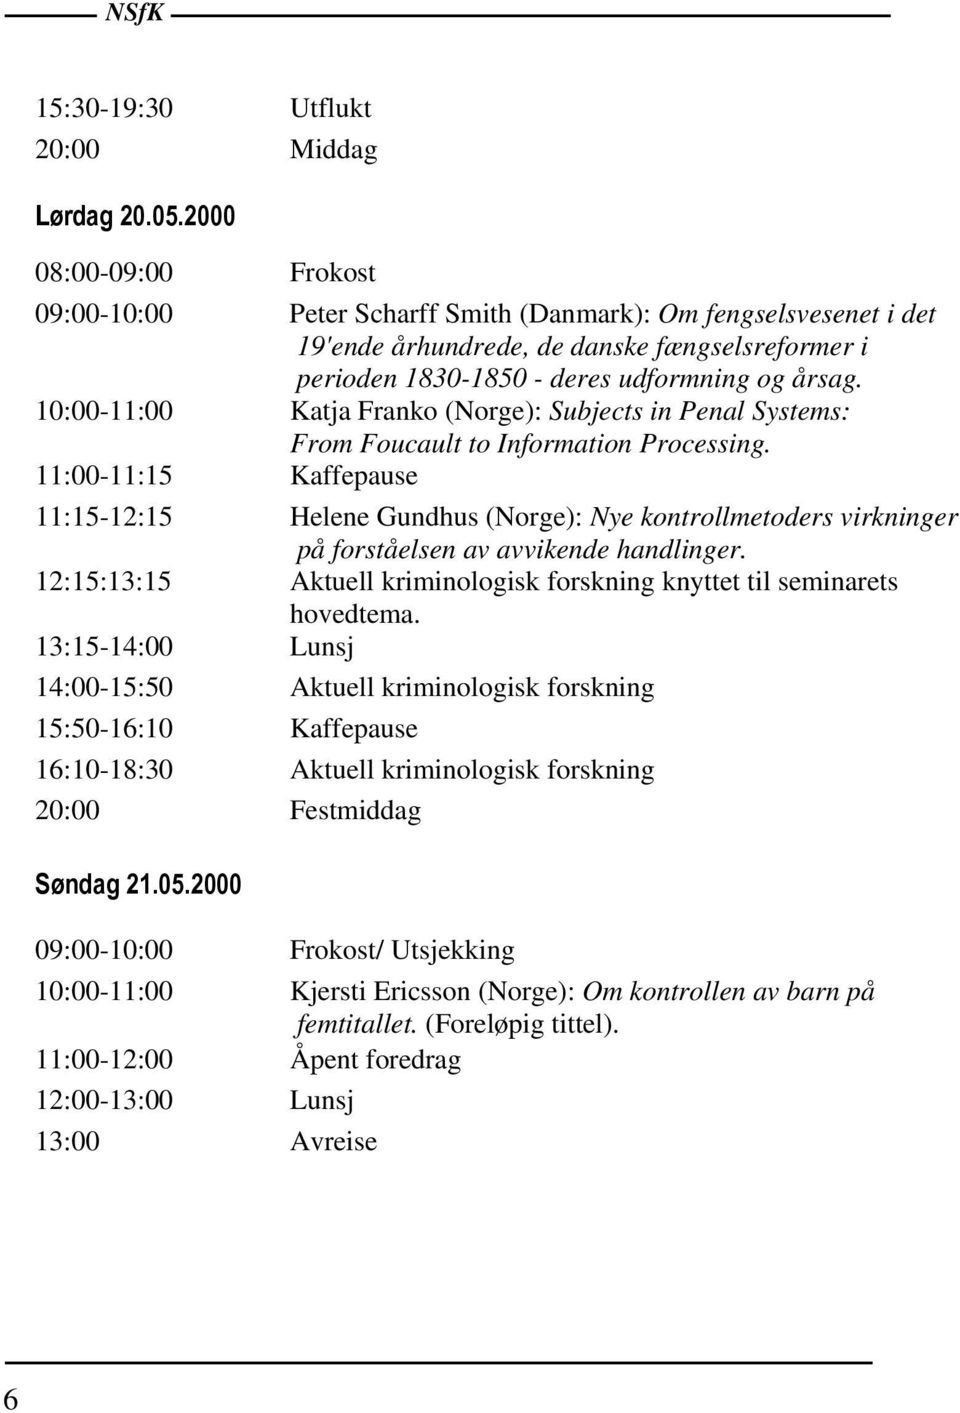 10:00-11:00 Katja Franko (Norge): Subjects in Penal Systems: From Foucault to Information Processing.